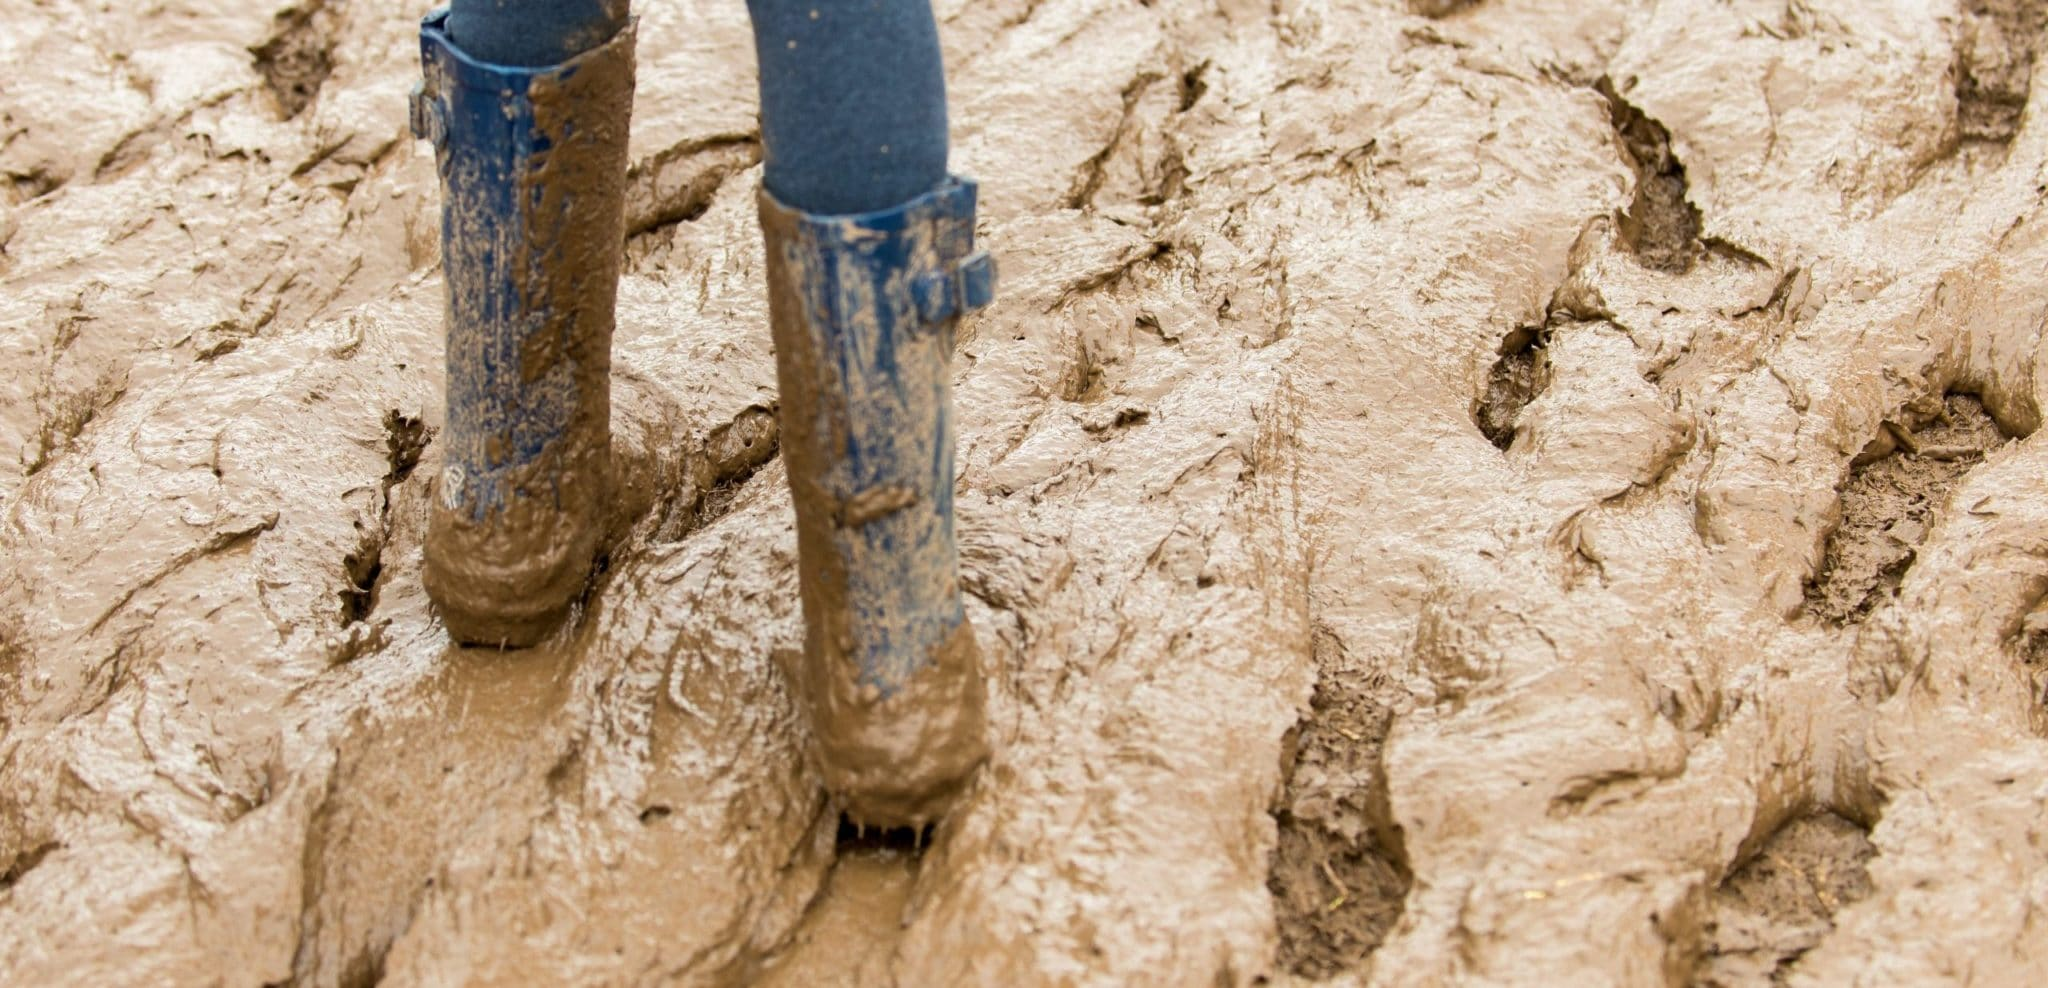 kids-boots-playing-in-mud